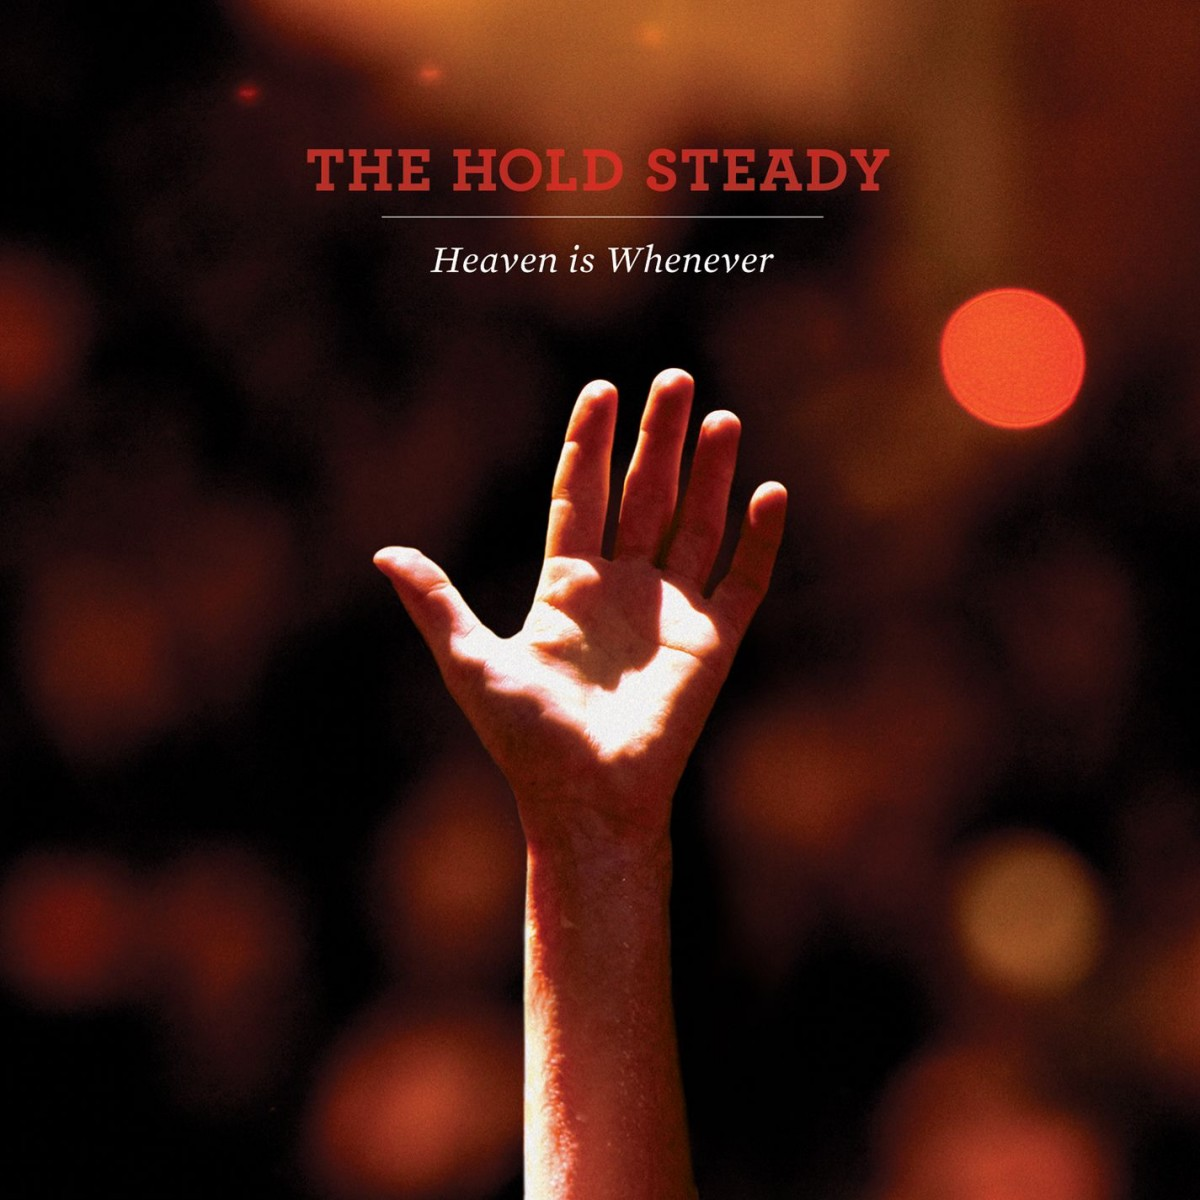 The Hold Steady - Heaven Is Whenever CD - VR 593